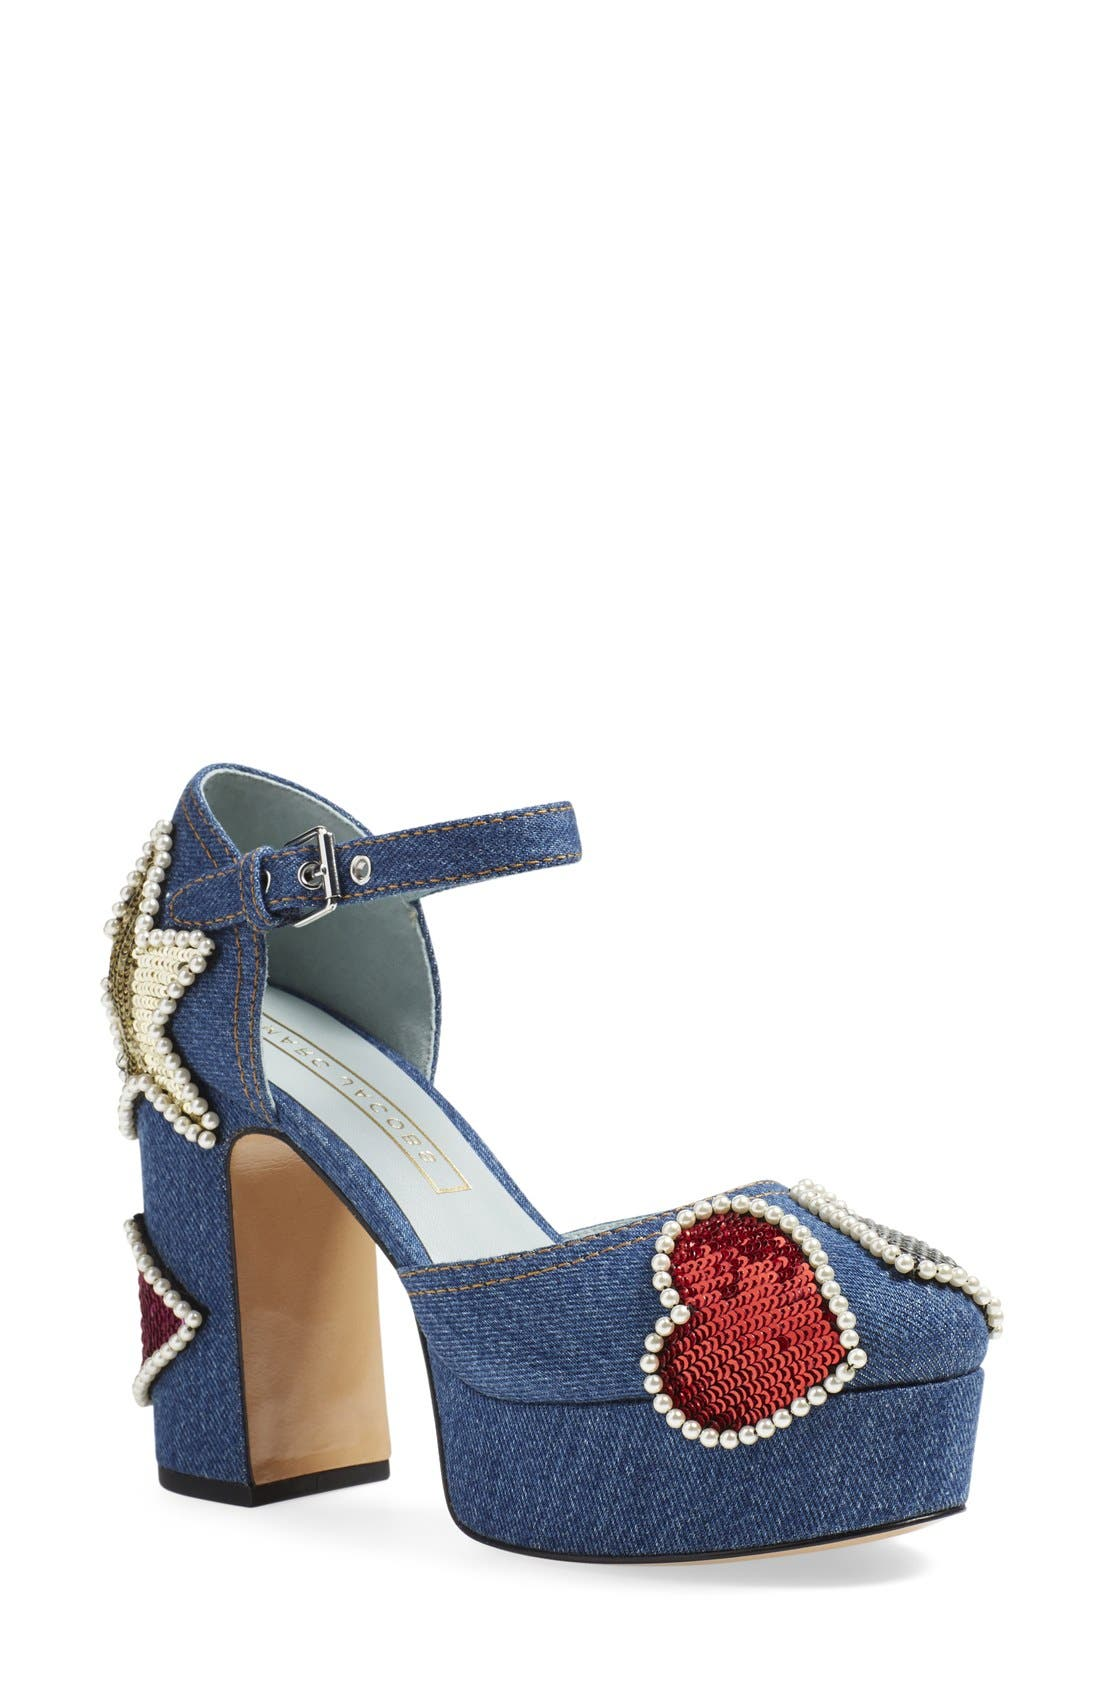 Alternate Image 1 Selected - MARC JACOBS 'American' Ankle Strap Platform Pump (Women)